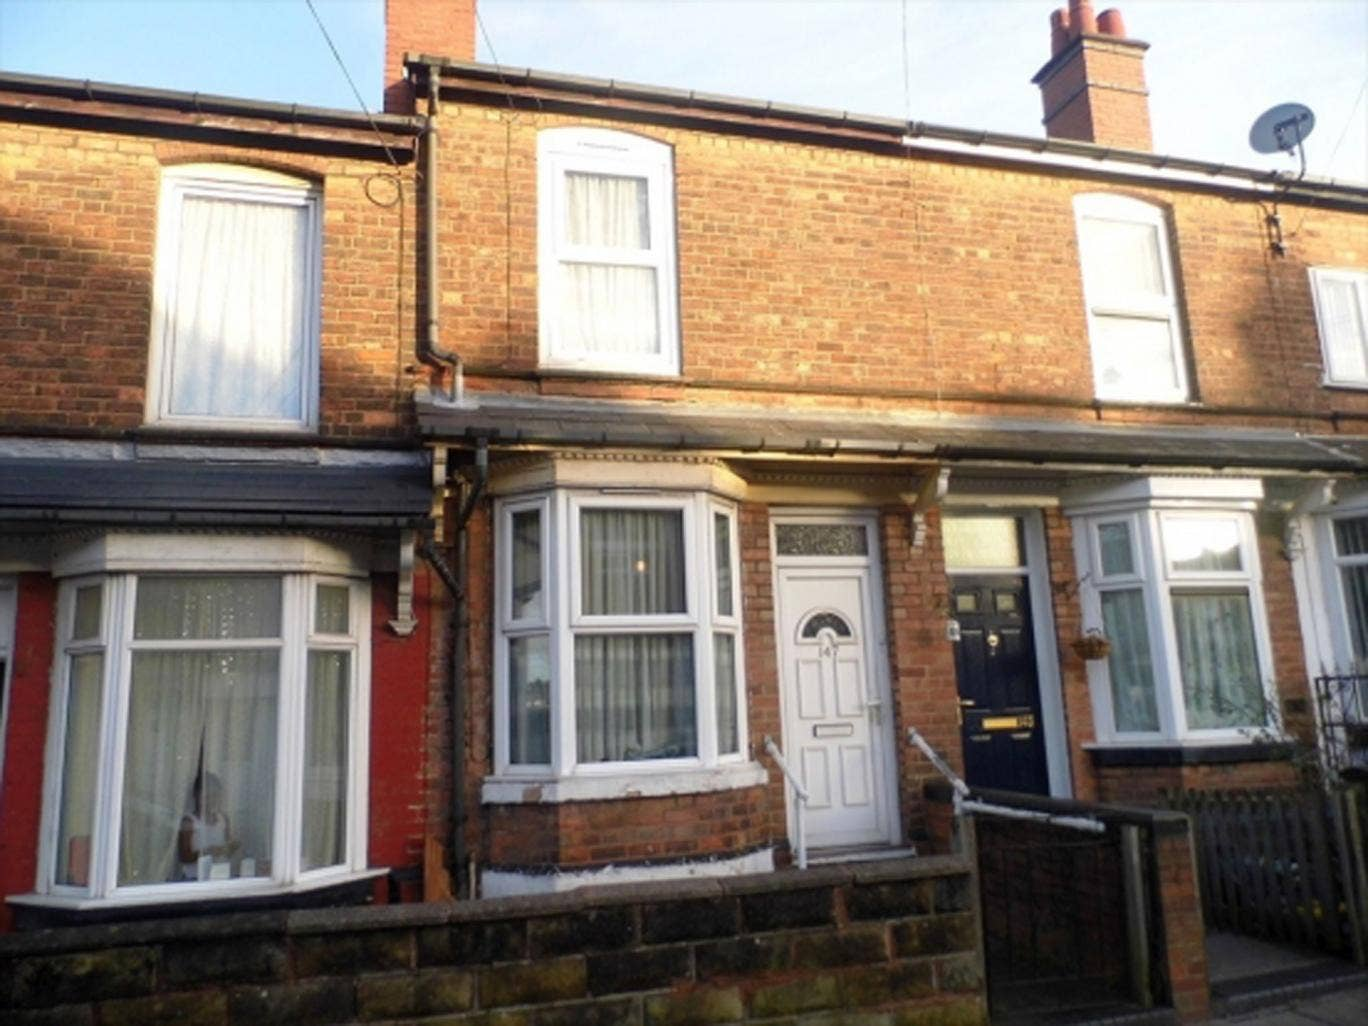 3 bedroom terraced house for sale in James Turner St., Birmingham, West Midlands B18, on with Sprinkbox Properties. Offers over £65,000